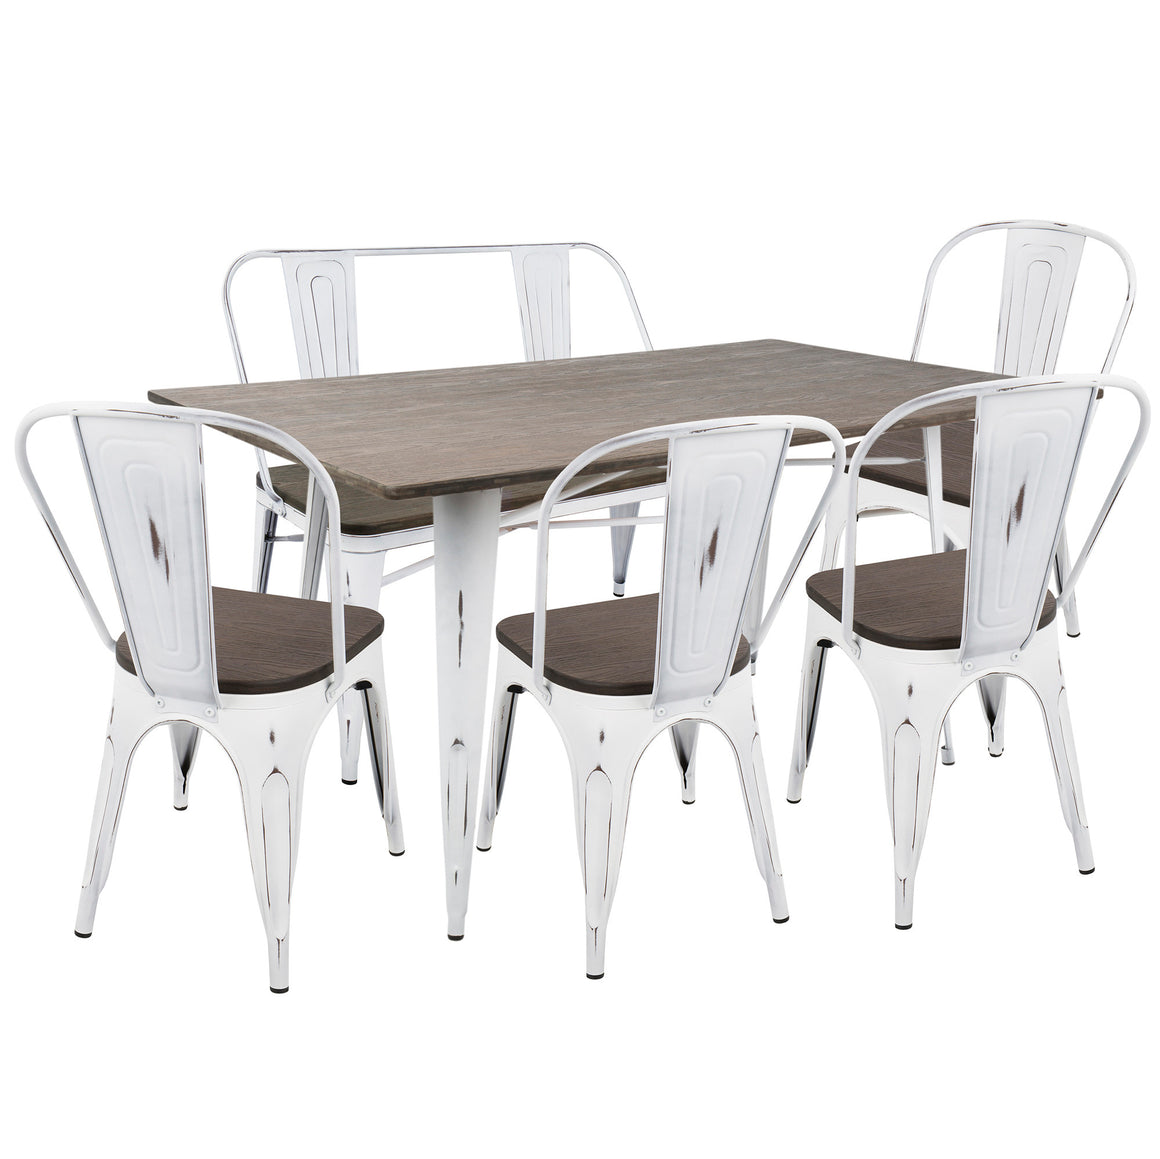 Oregon 6-Piece Industrial-Farmhouse Dining Set in Vintage White and Espresso by LumiSource